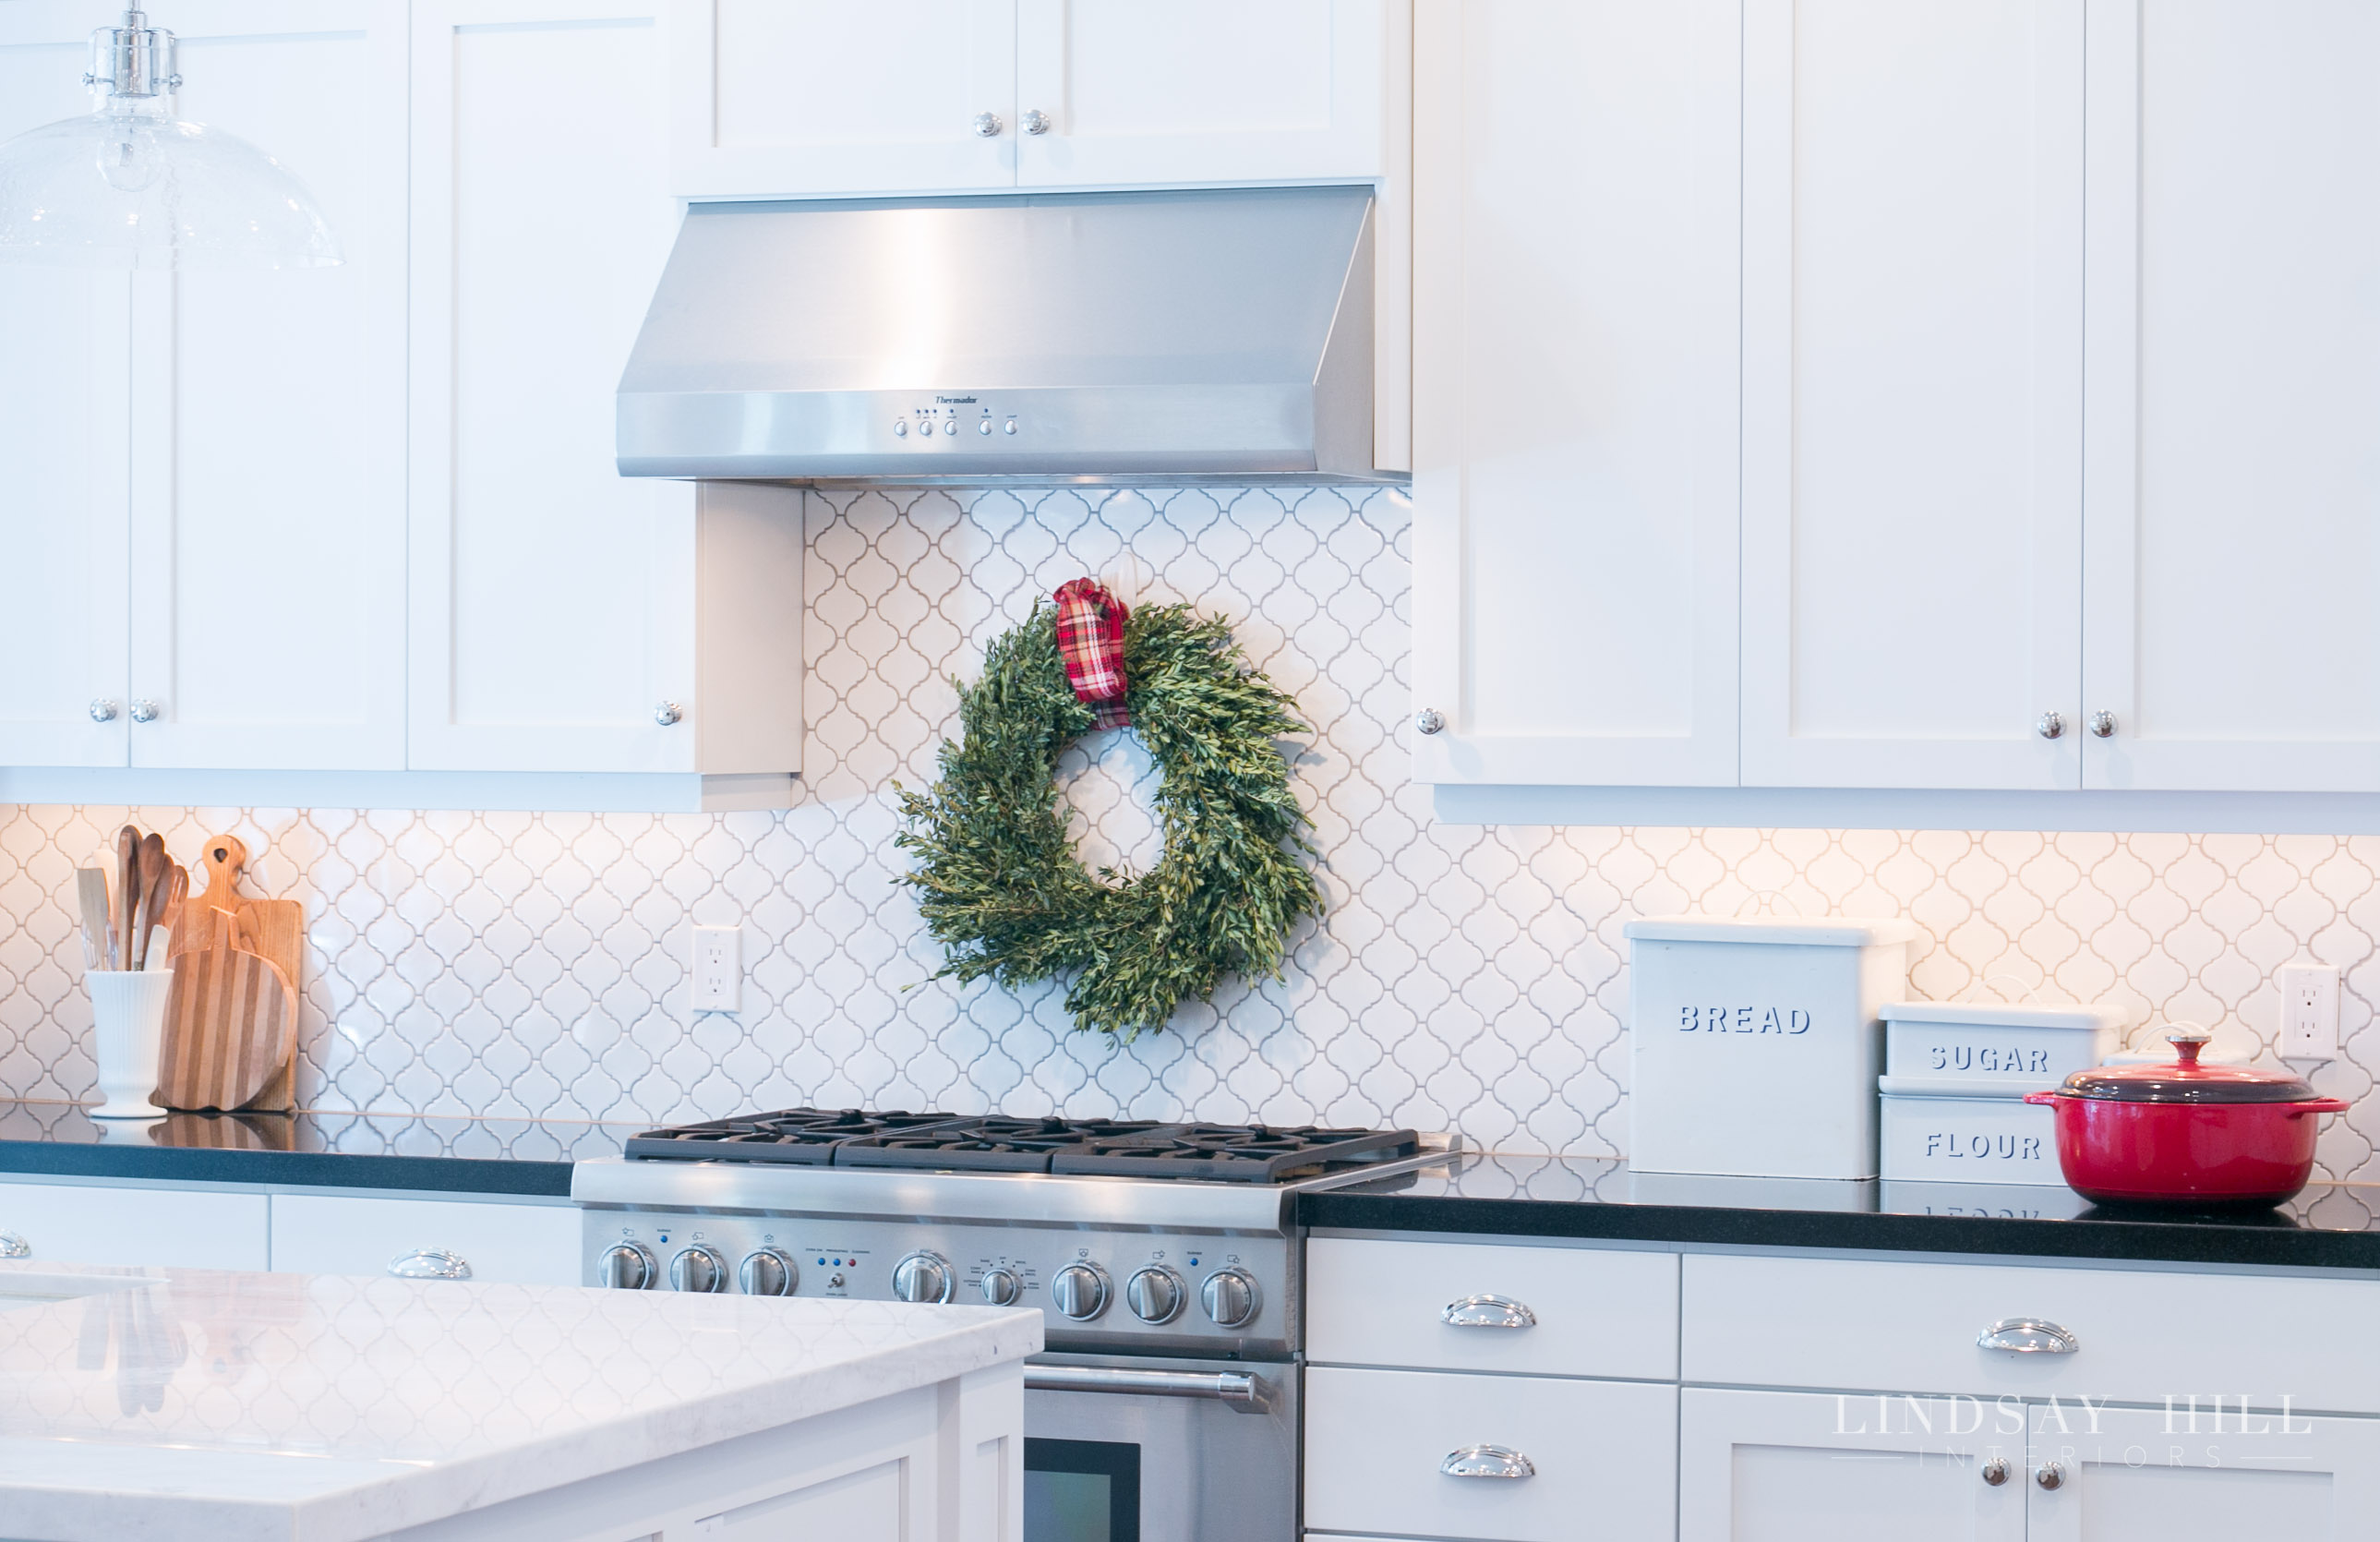 Lindsay Hill Interiors holiday home tour christmas kitchen with wreath